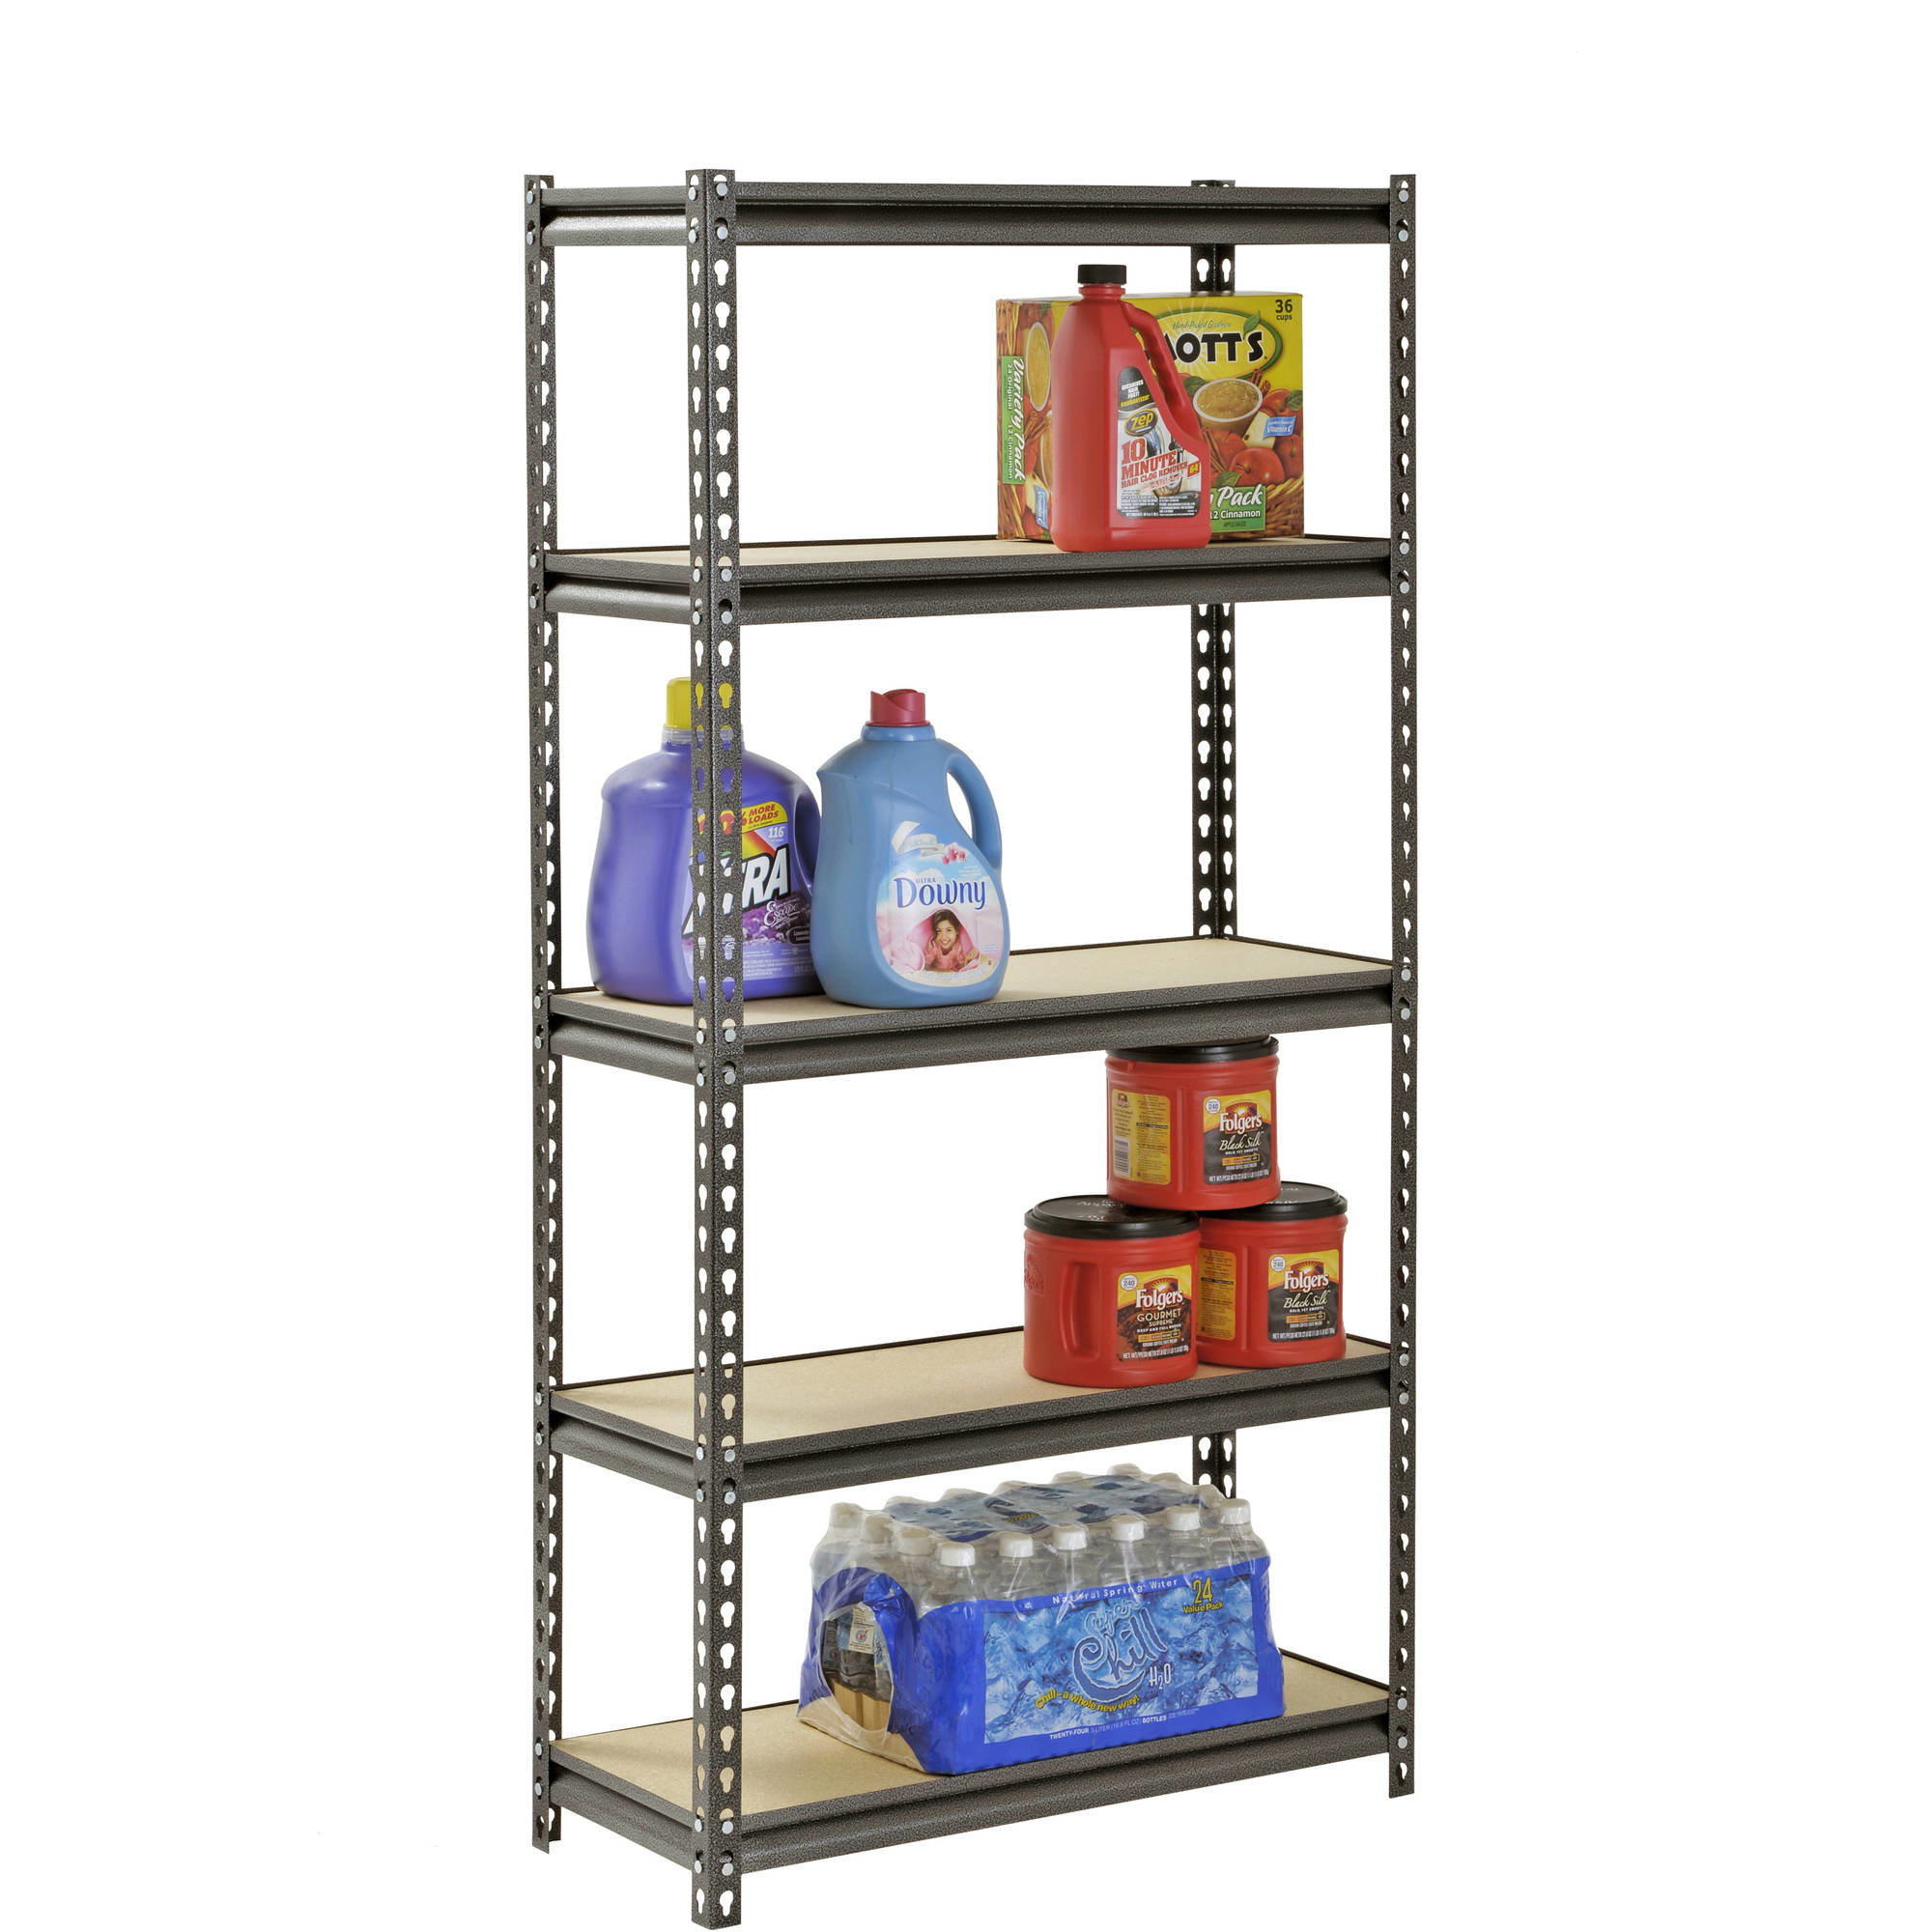 a five-shelf shelving unit with groceries and laundry supplies on it